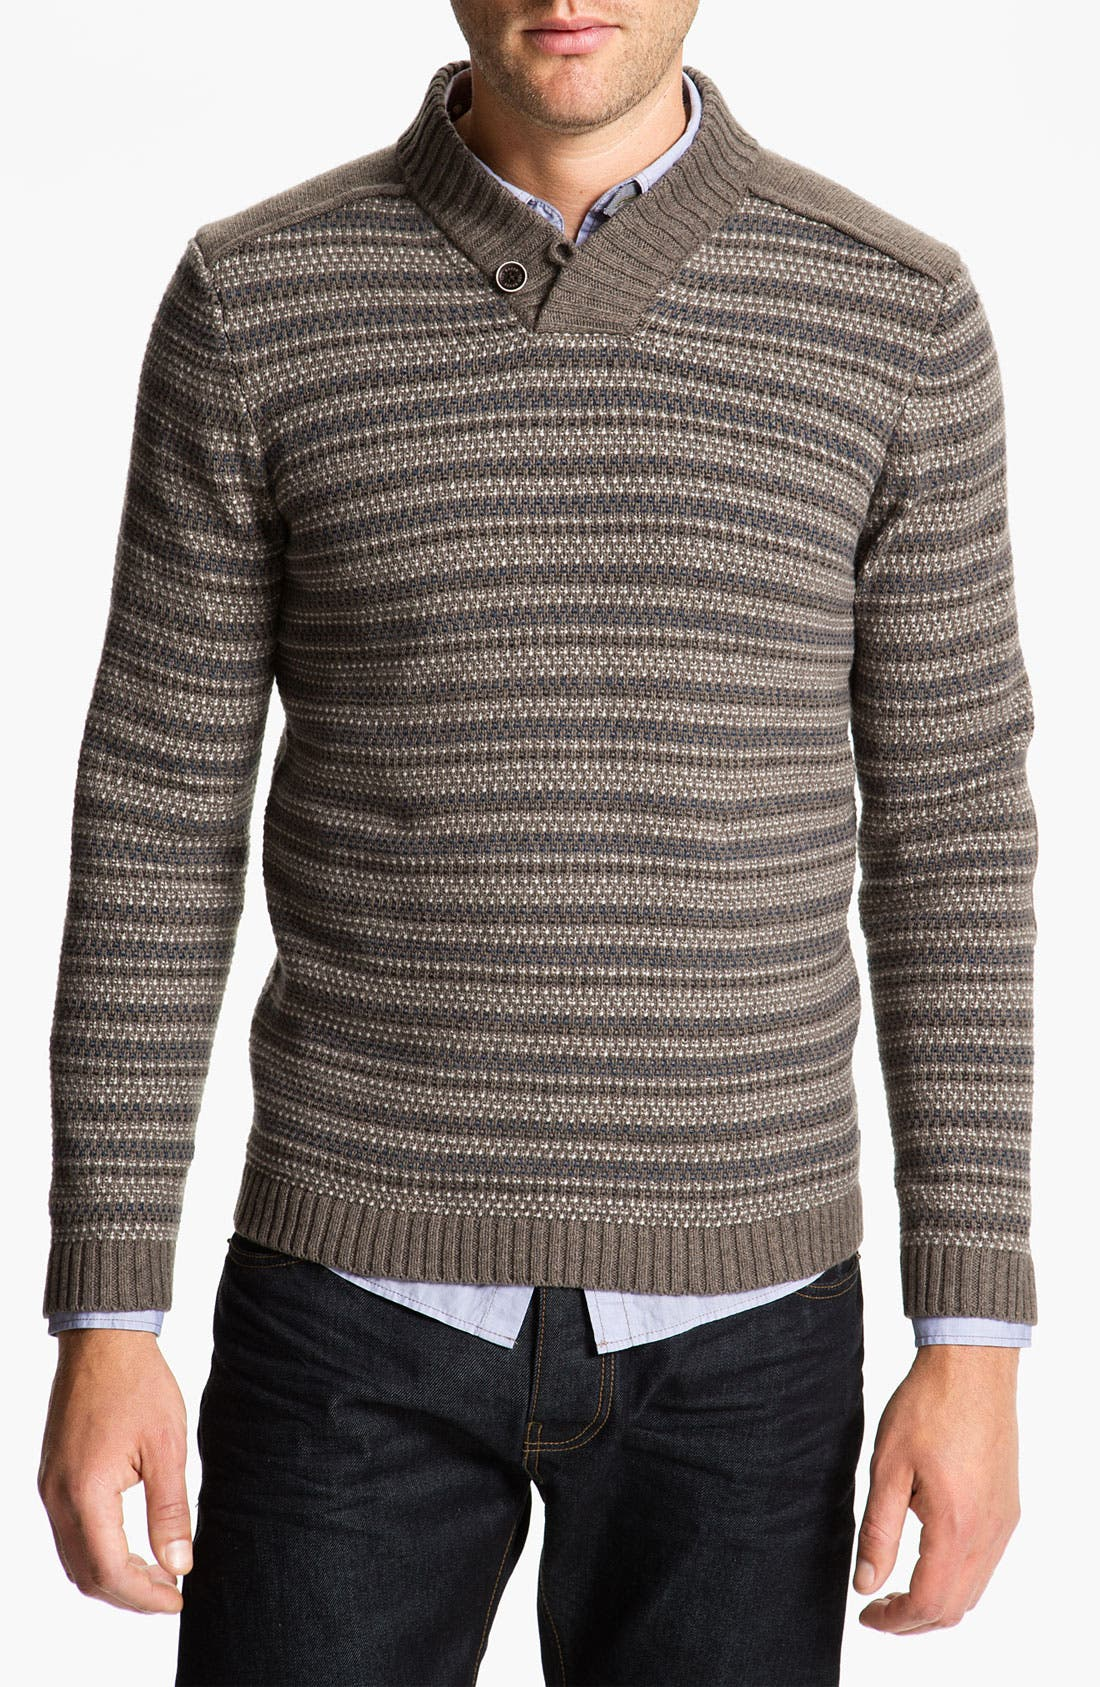 Alternate Image 1 Selected - Ted Baker London 'Biggle' Sweater